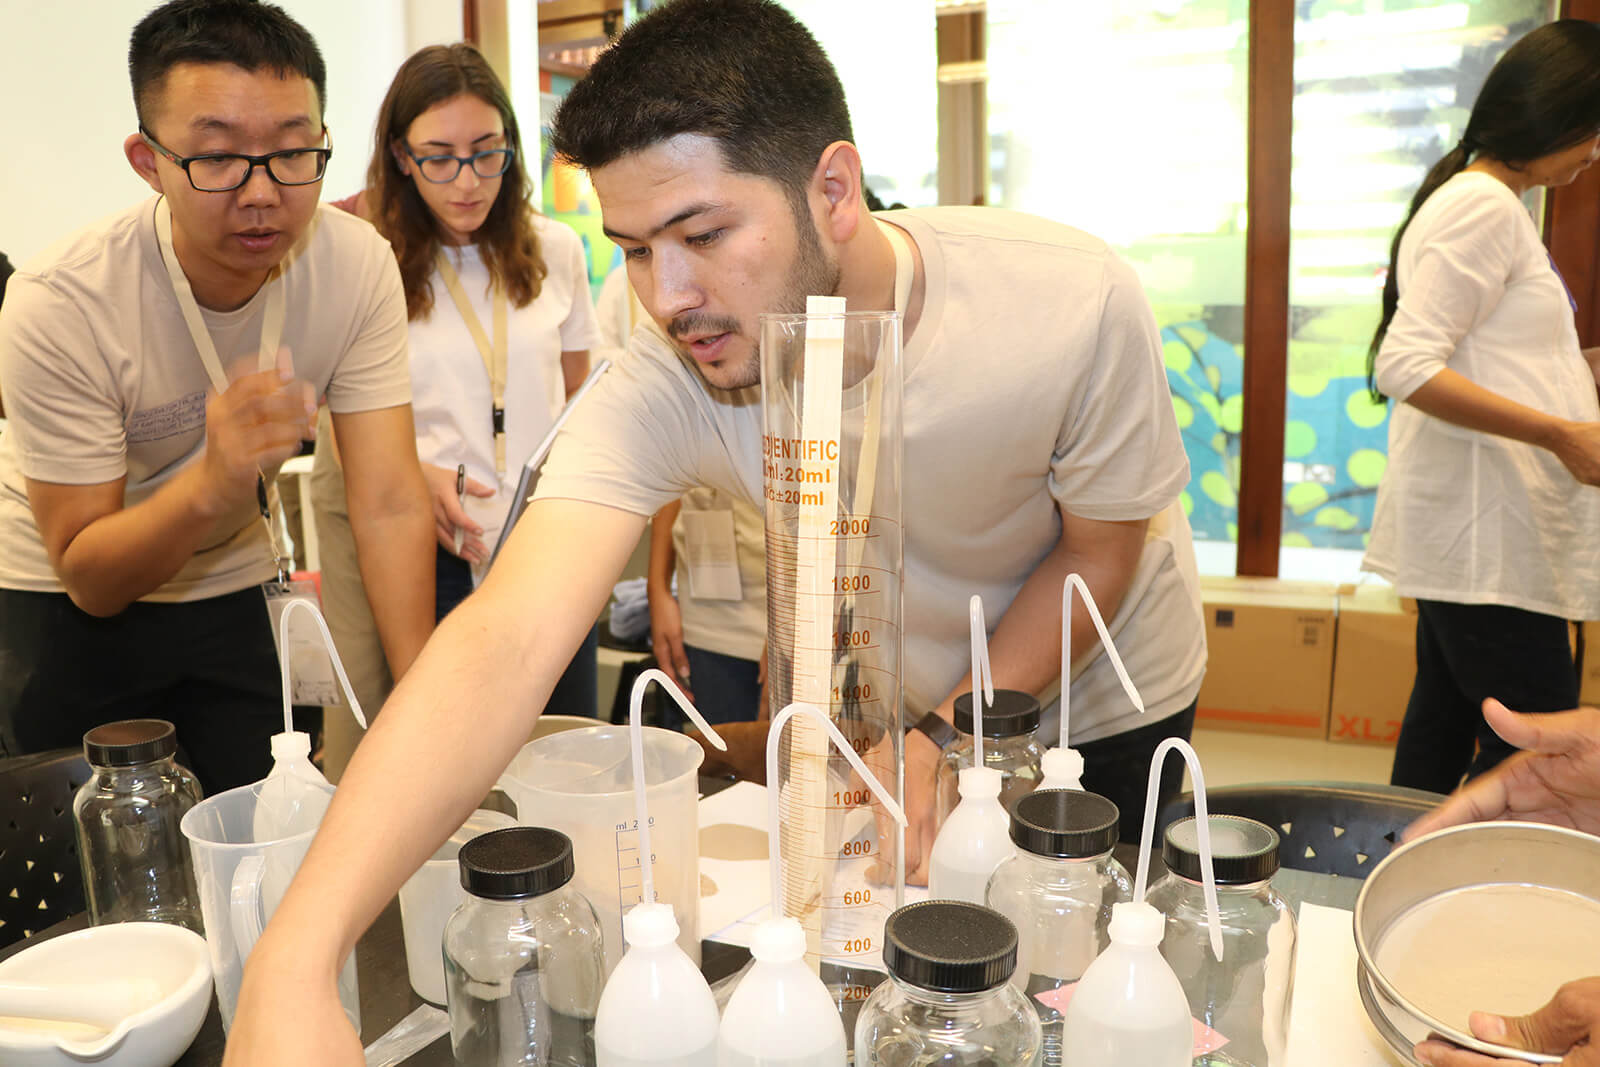 Sajjad Sharifi, a young man wearing a beige t-shirt, reaches across a table crowded with beakers and jars, with other course participants visible in the background.